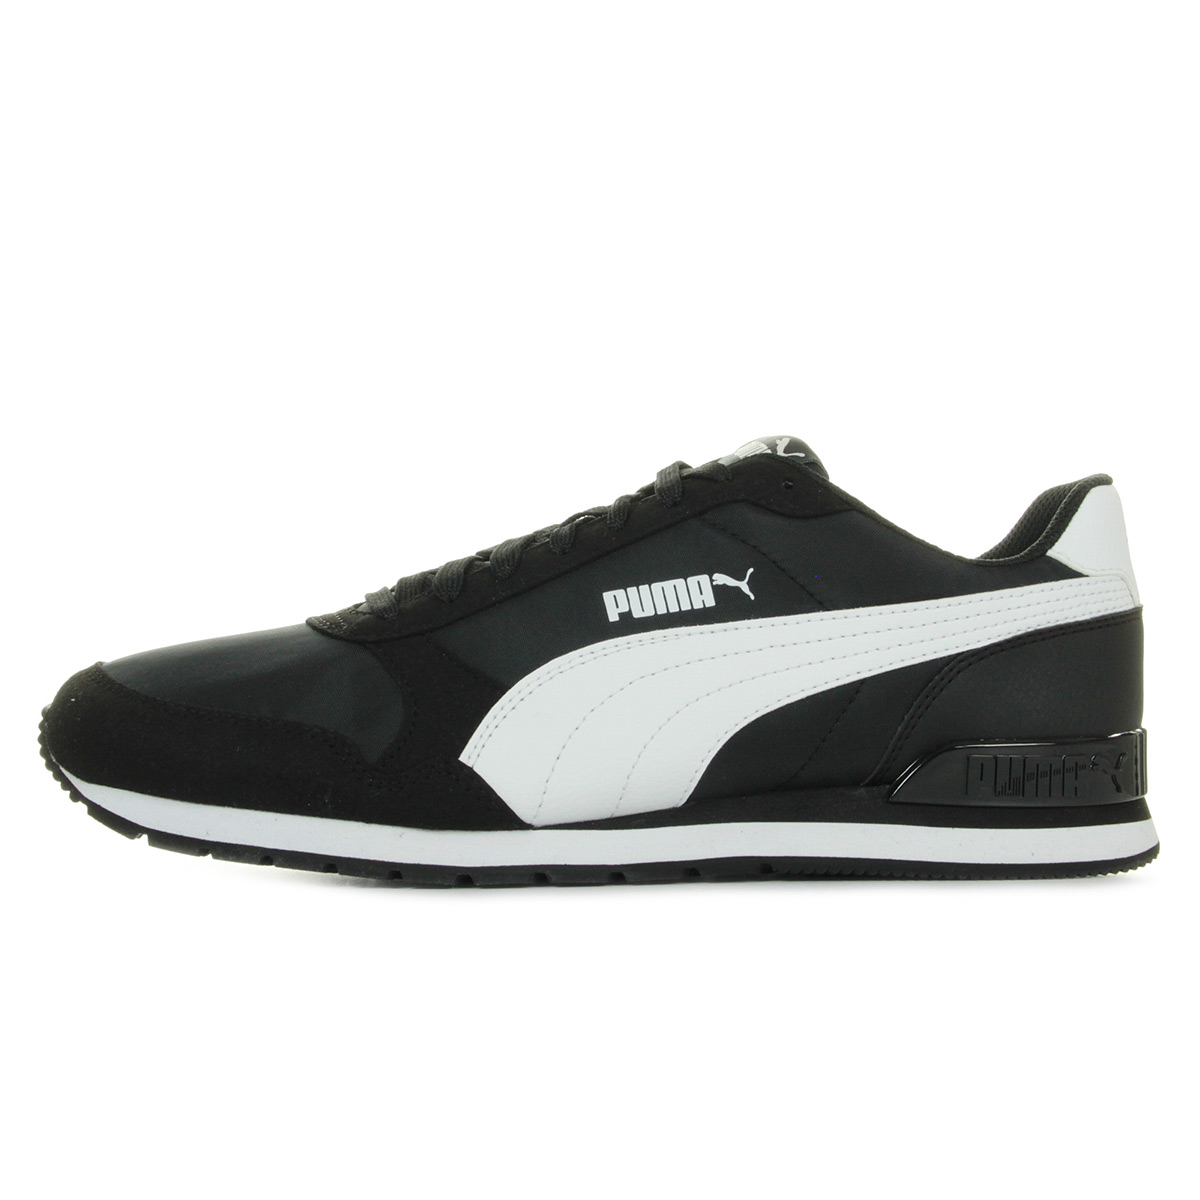 Puma ST Runner v2 NL 36527801, Baskets mode homme